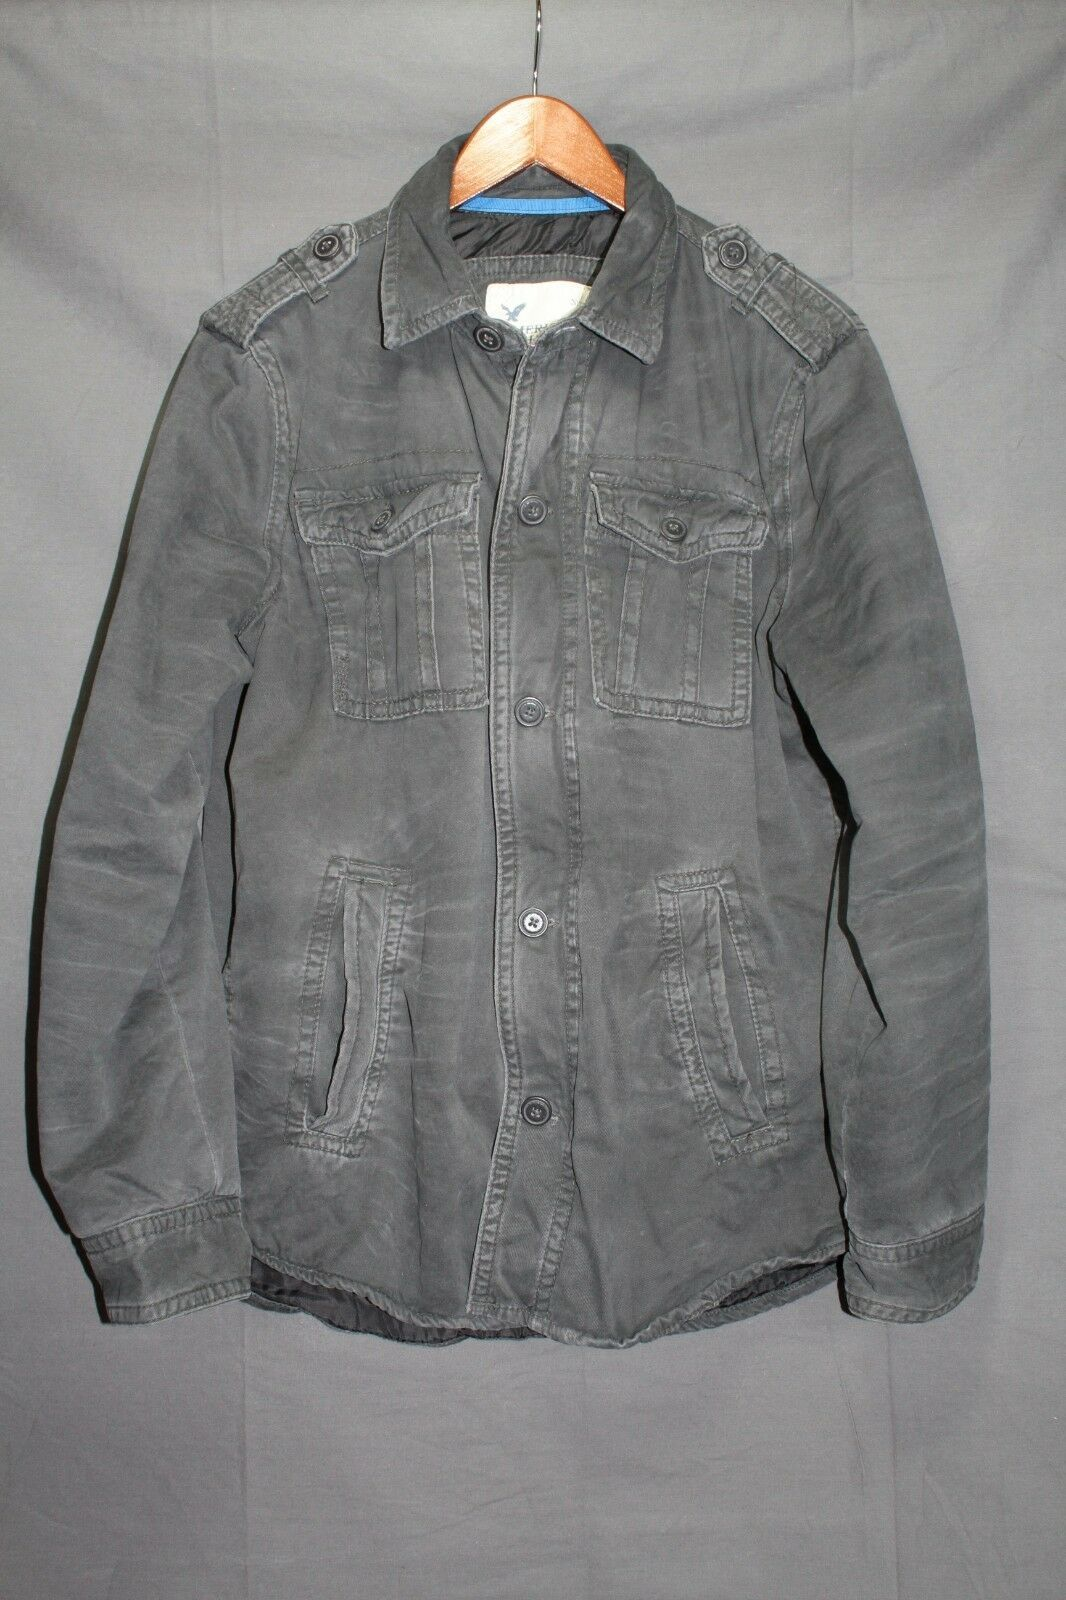 NEW Men's AE Military Field Coat Lined Shirt Jacket Twill Grey M - $99.95